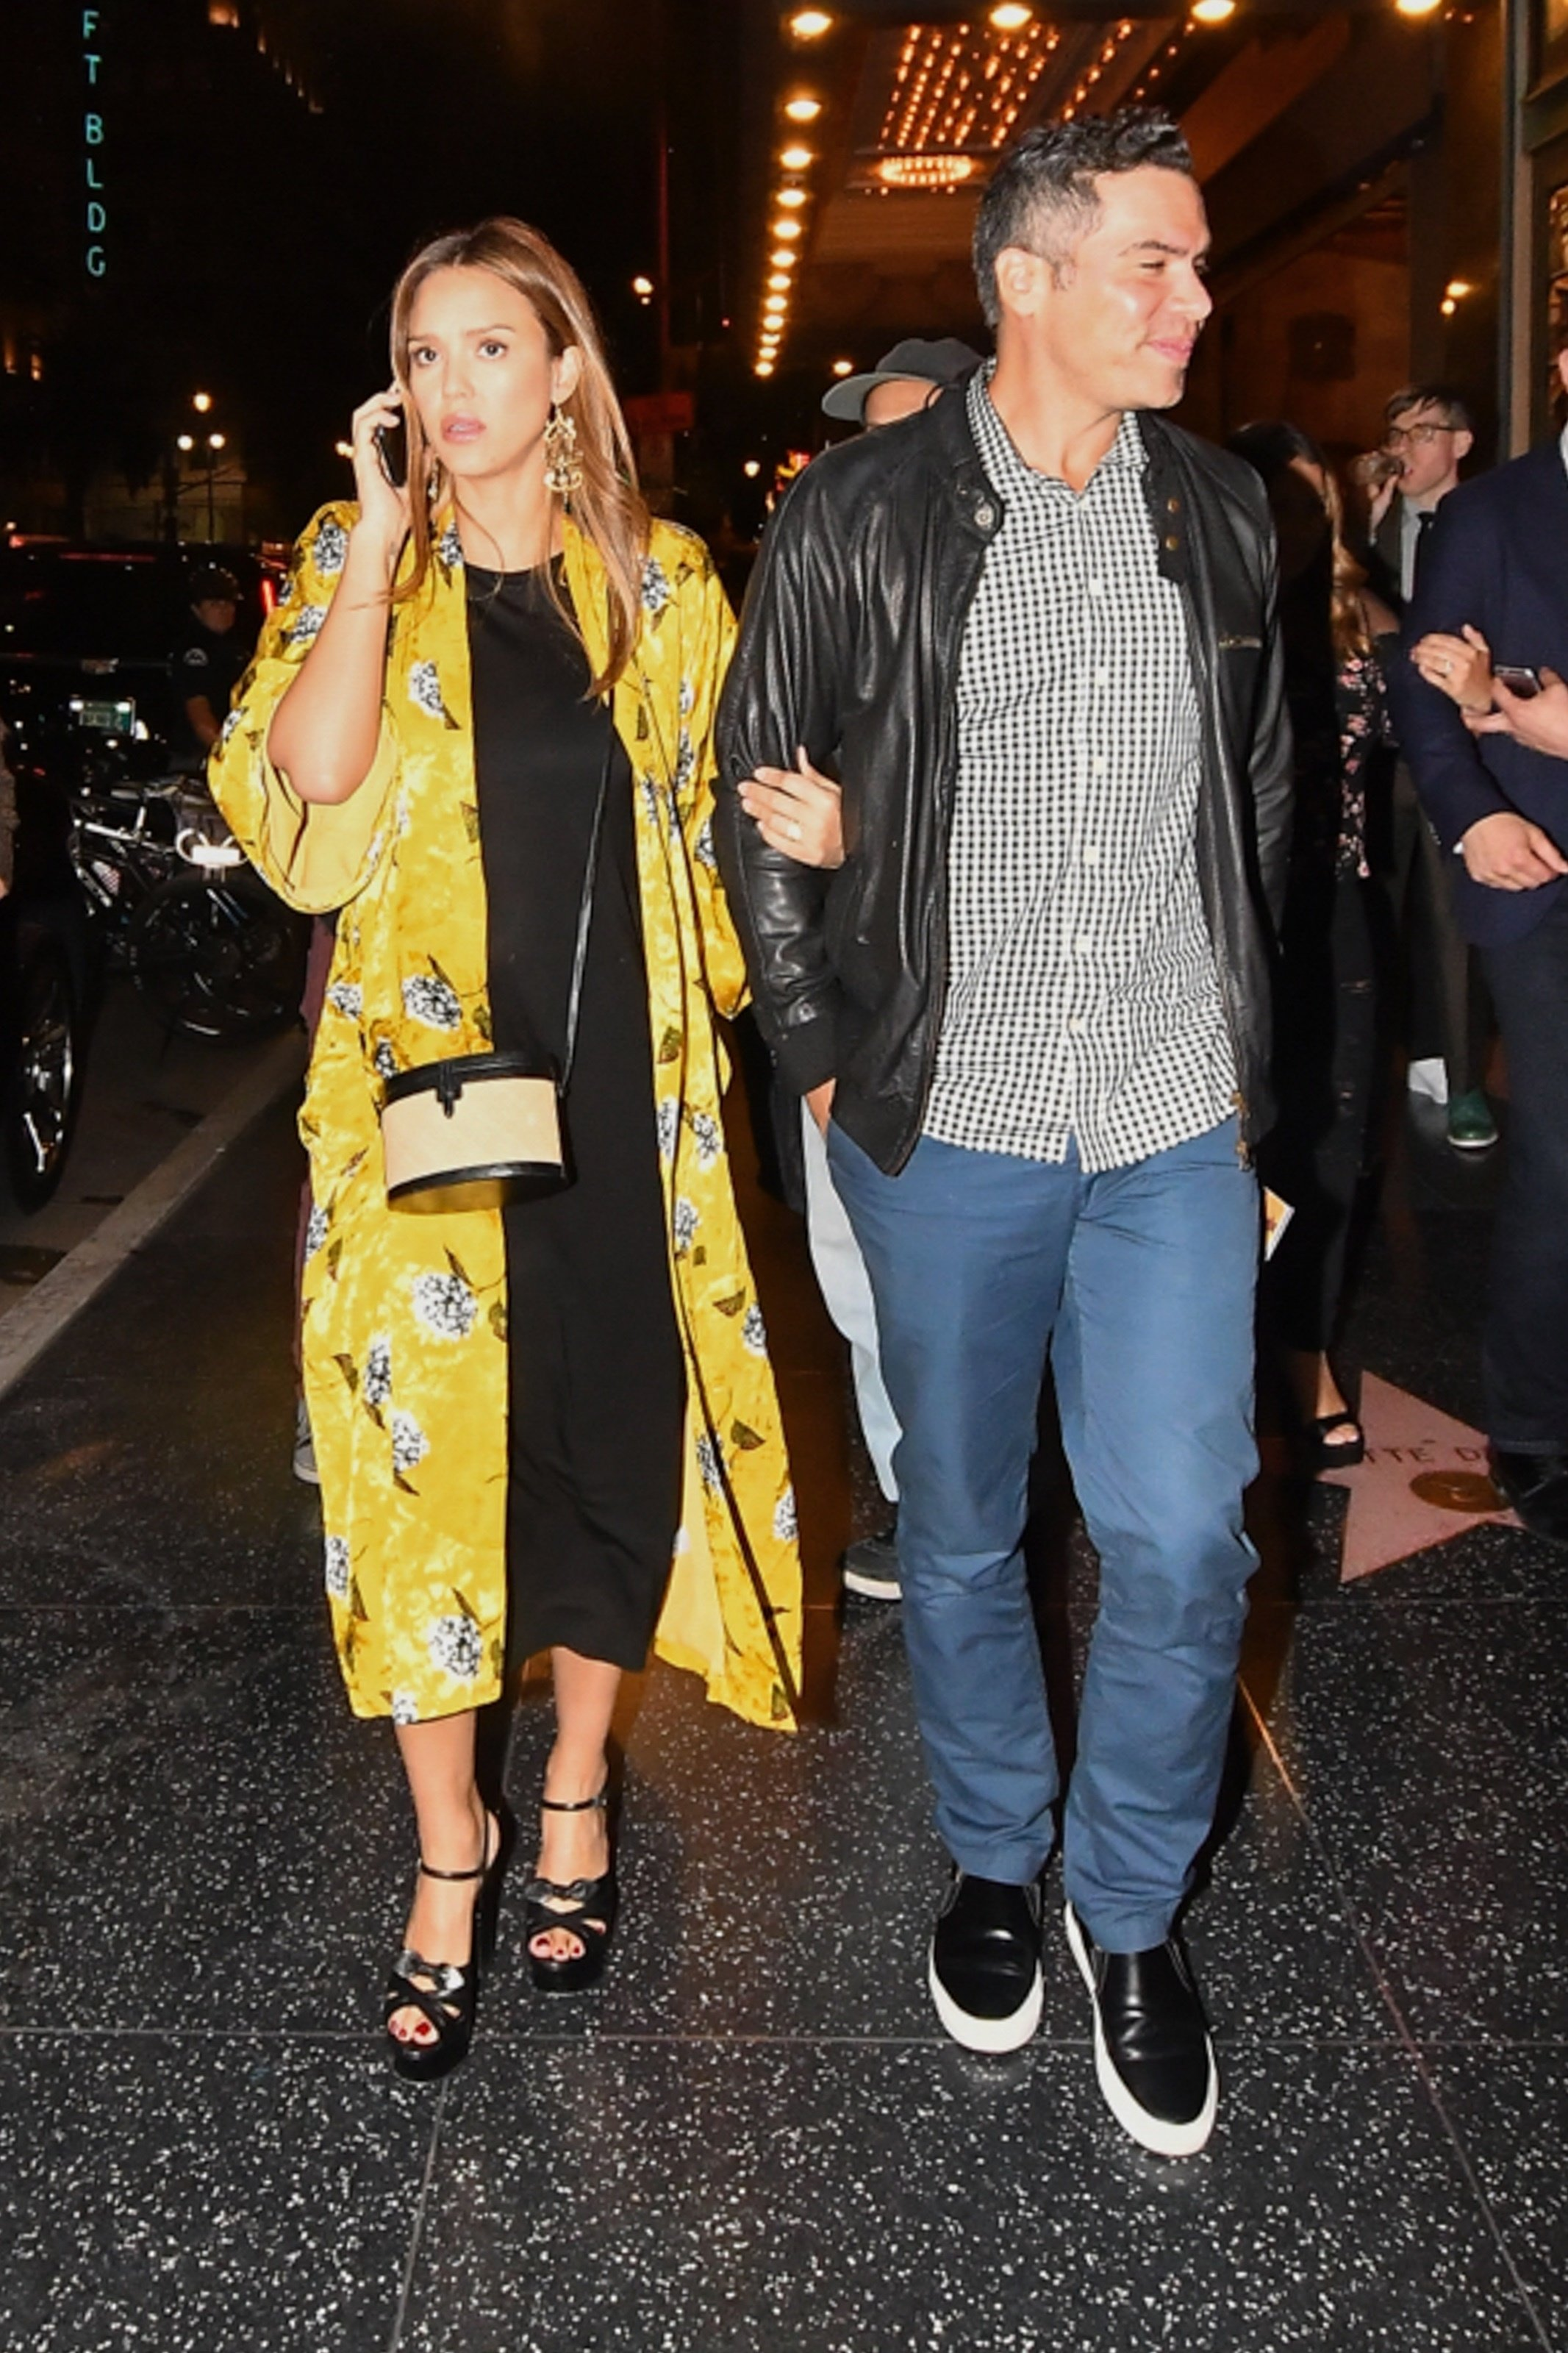 Hollywood, CA  - Jessica Alba and Cash Warren go to see 'Hamilton's' opening night the Pantages Theatre where many other stars attended.  Pictured: Jessica Alba, Cash Warren  BACKGRID USA 16 AUGUST 2017, Image: 345425243, License: Rights-managed, Restrictions: , Model Release: no, Credit line: Profimedia, AKM-GSI